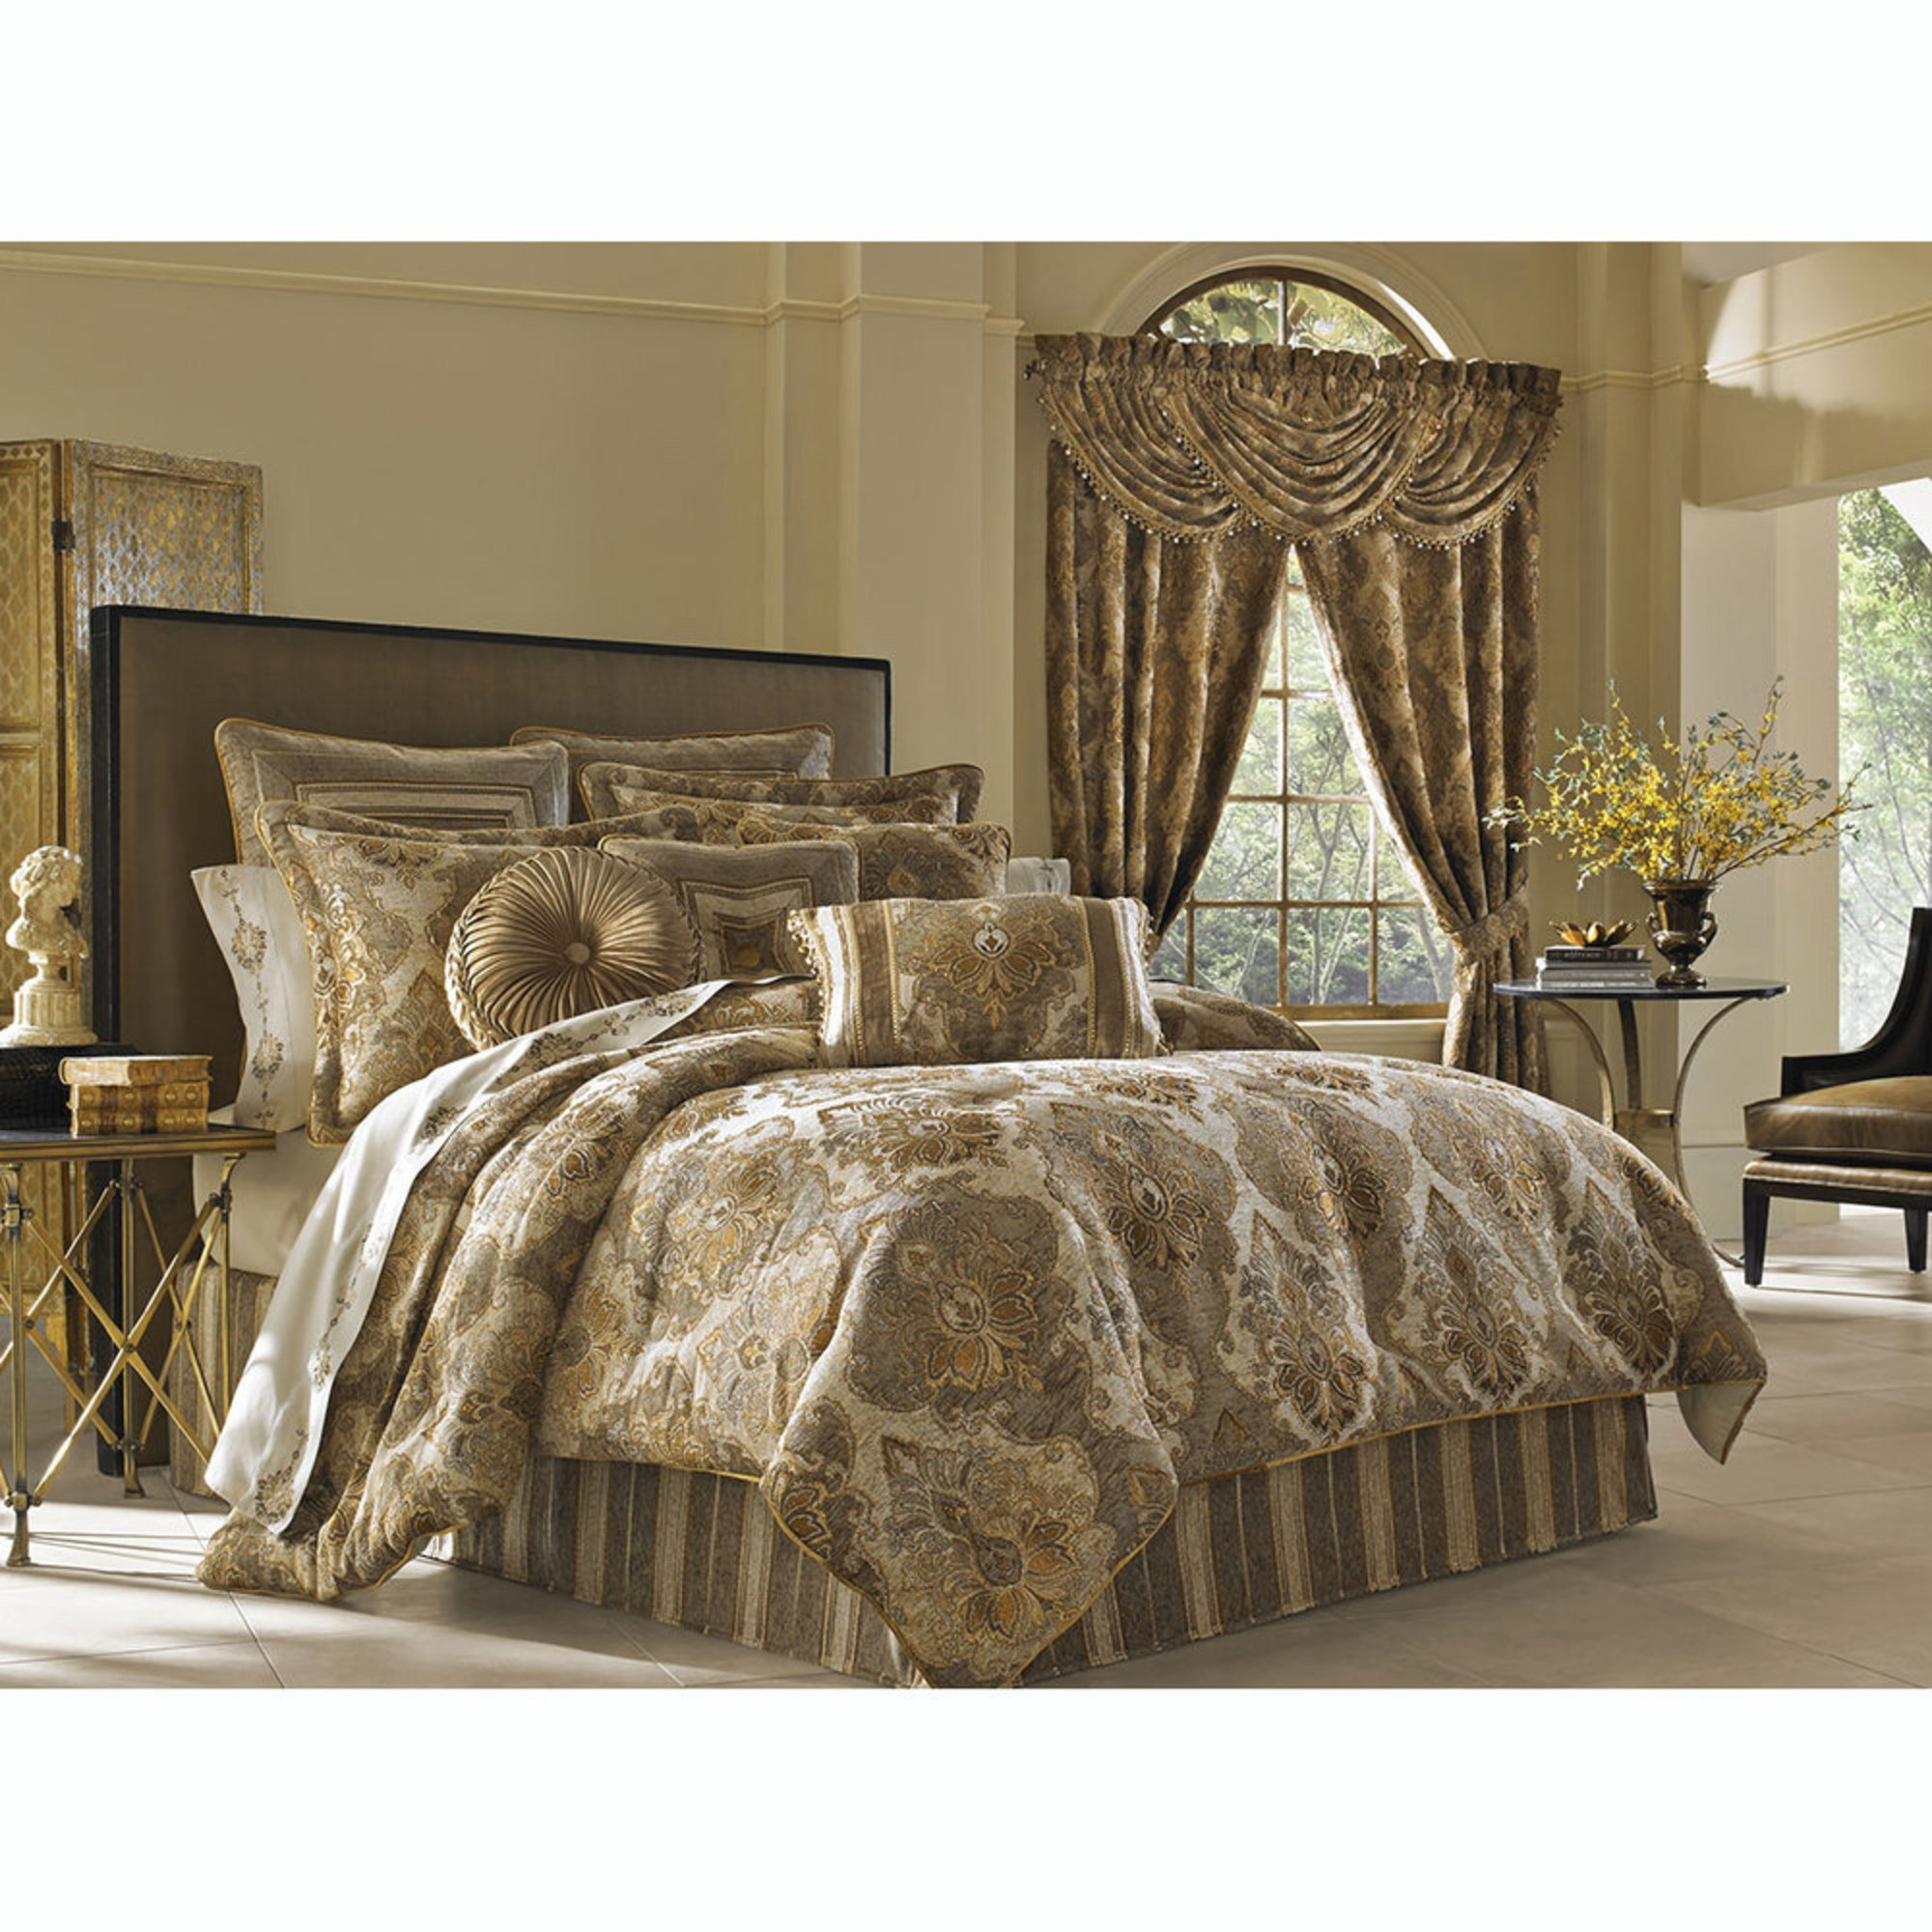 collection deals quotations cheap piece palace dragon black chezmoi gold find line comforter set queen king on jacquard guides shopping get